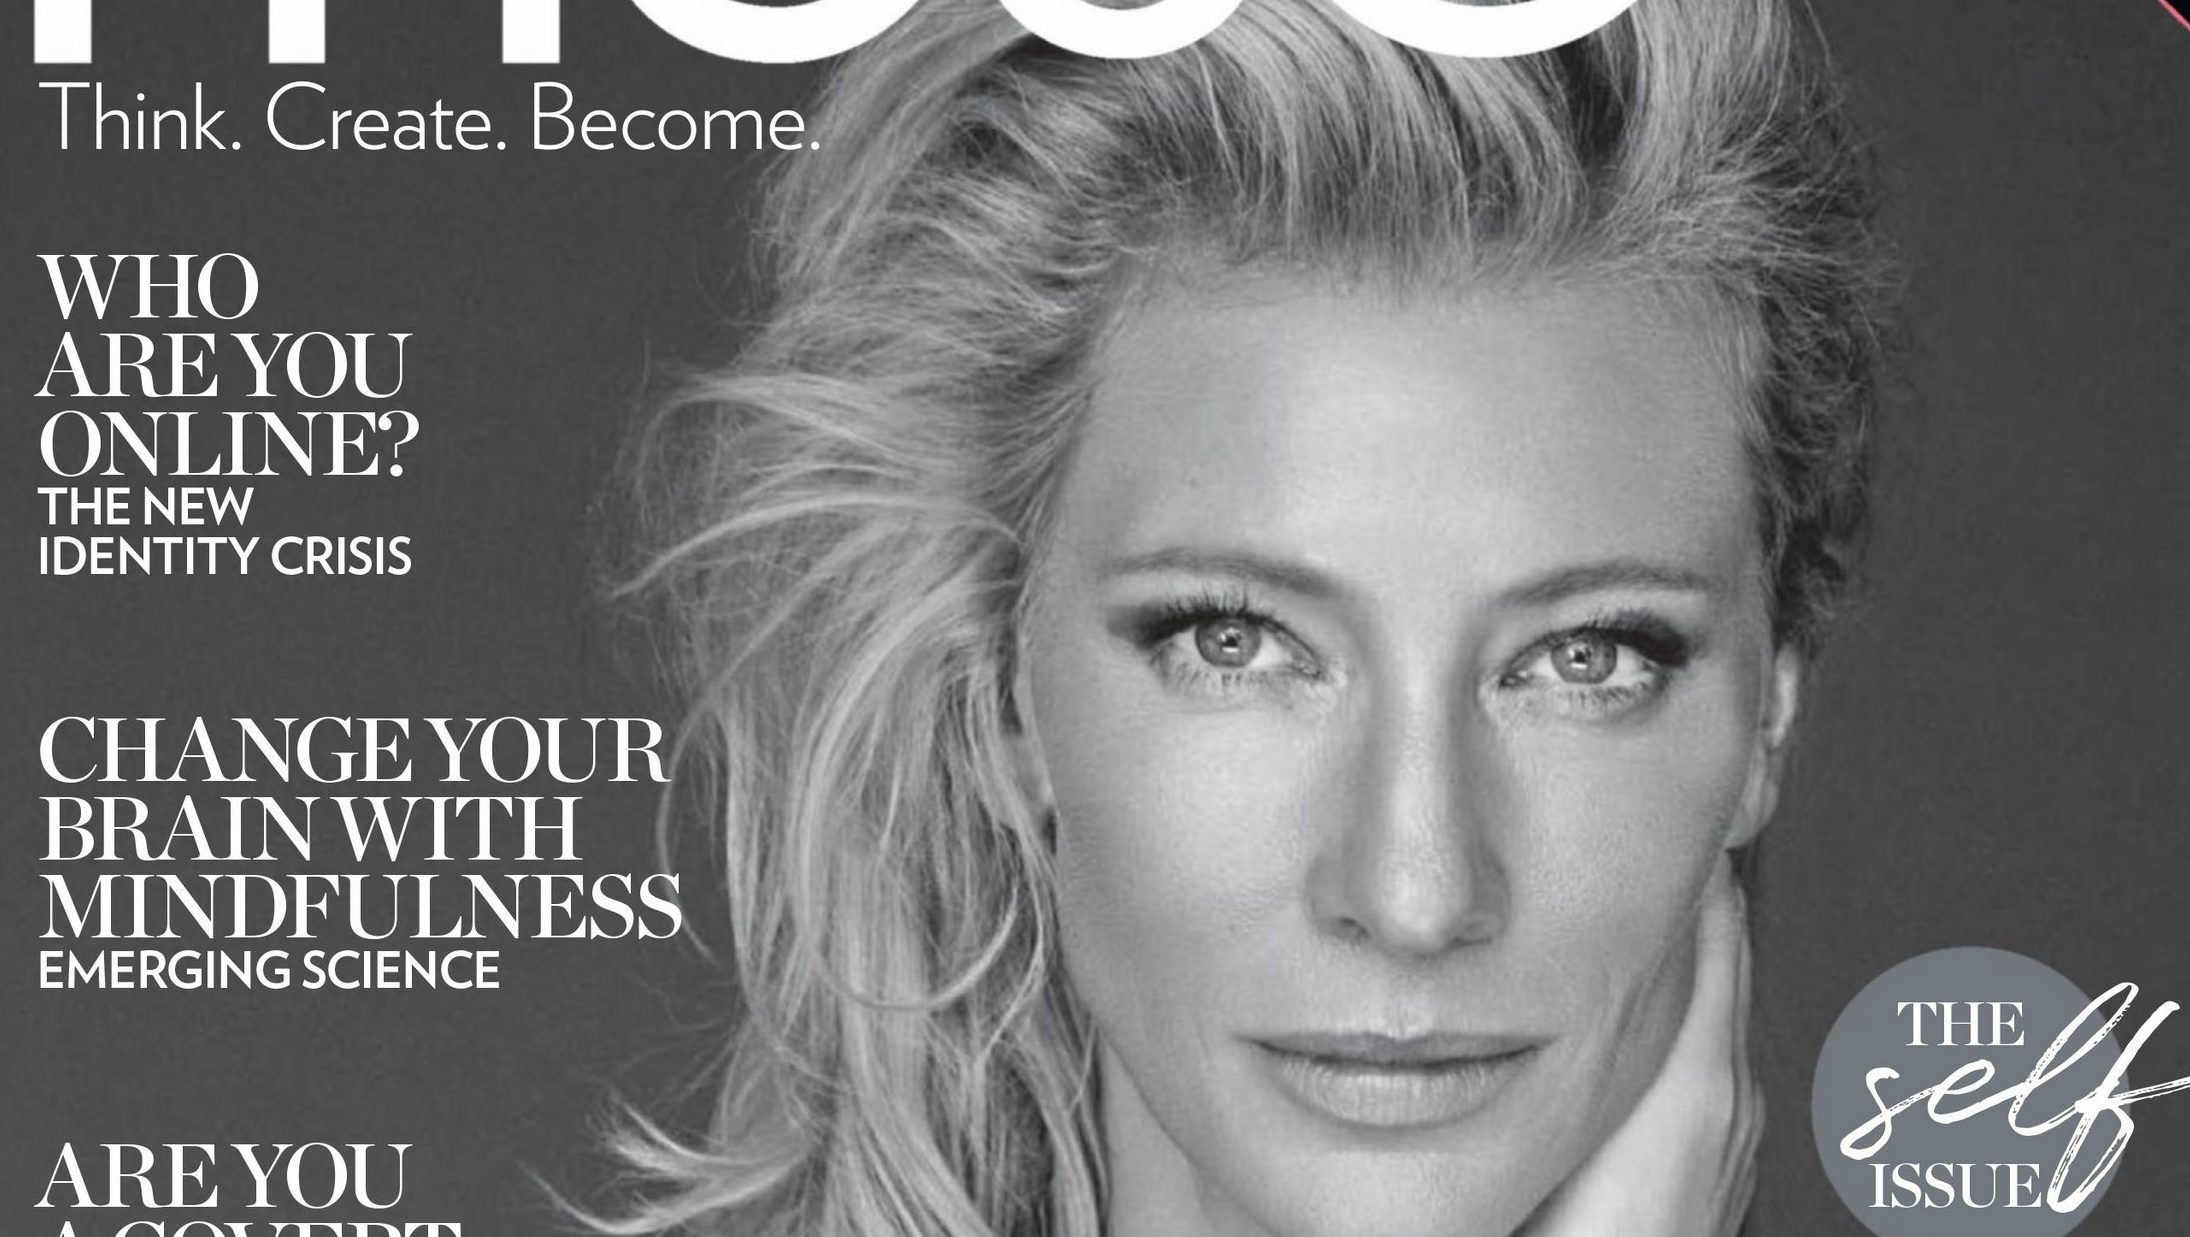 Cate Blanchett covers the launch issue of Australian Muse Magazine